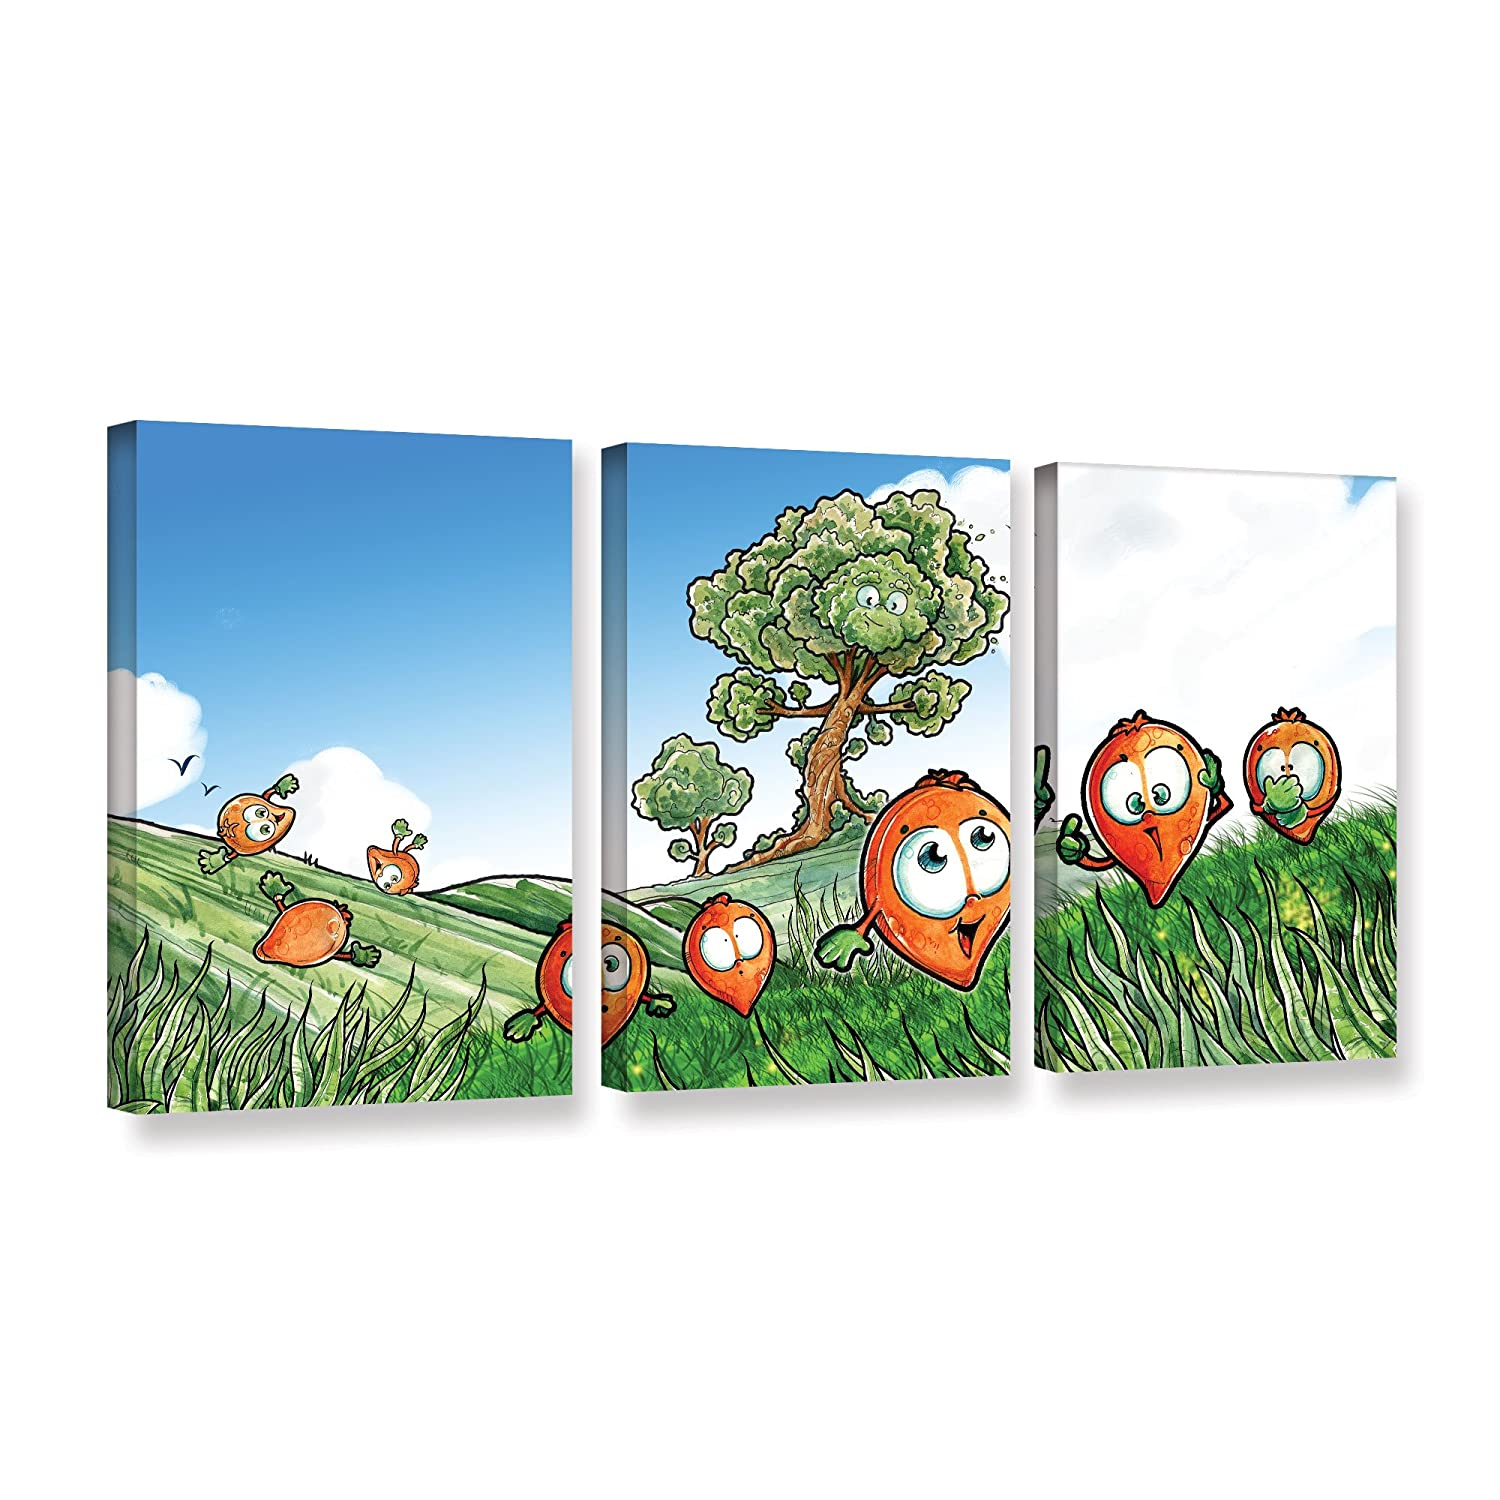 ArtWall 3 Piece Luis Peress Seeds Gallery Wrapped Canvas Set 36 x 72